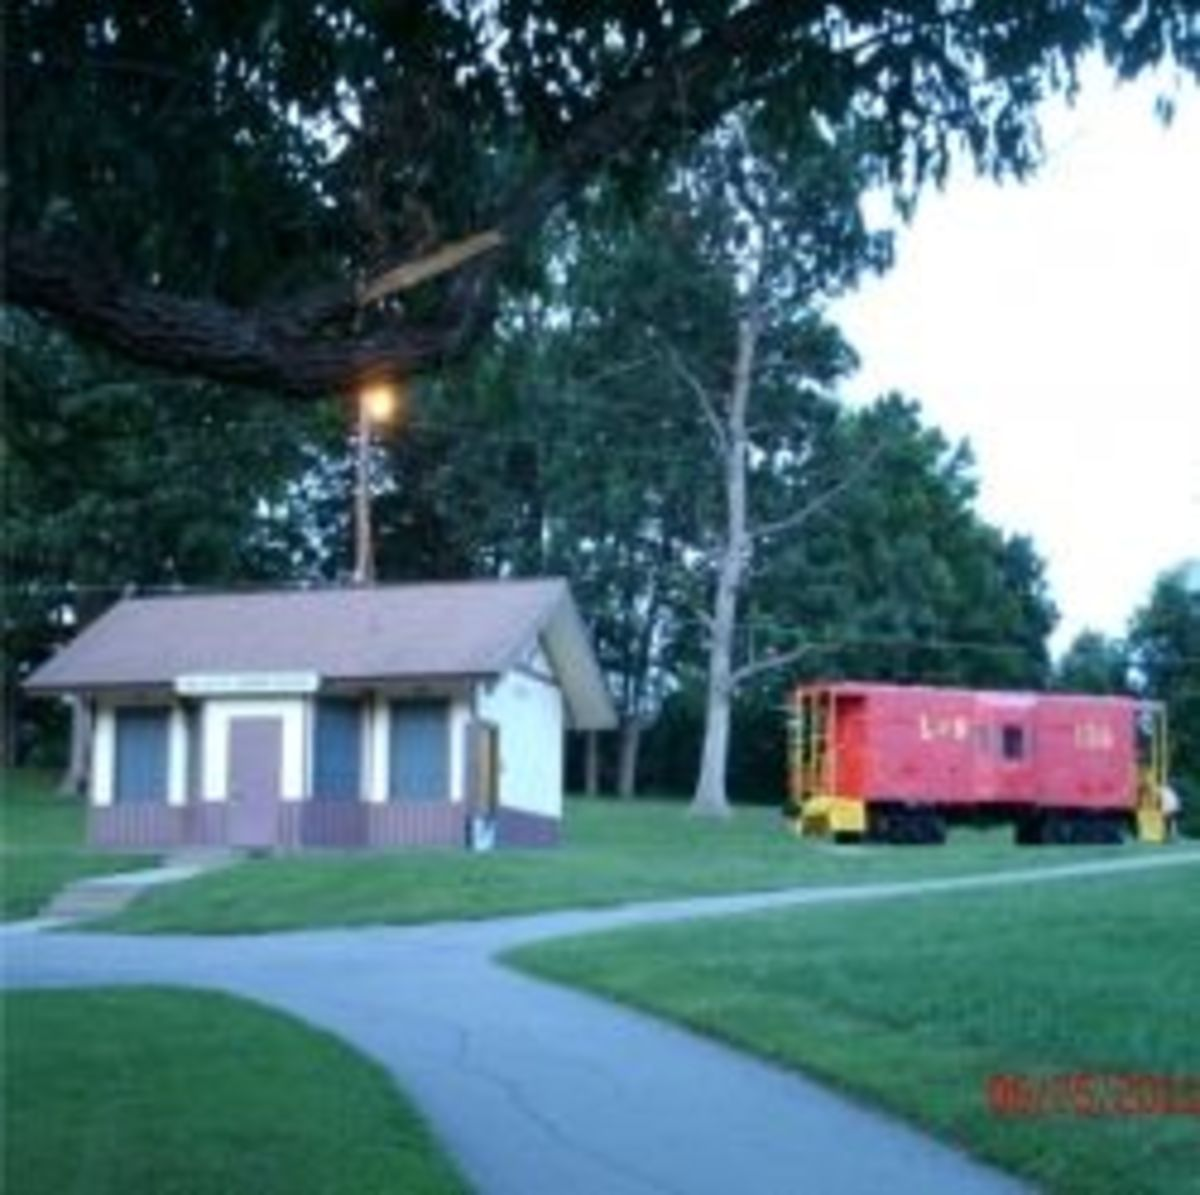 Red Caboose Park in Nashville, TN